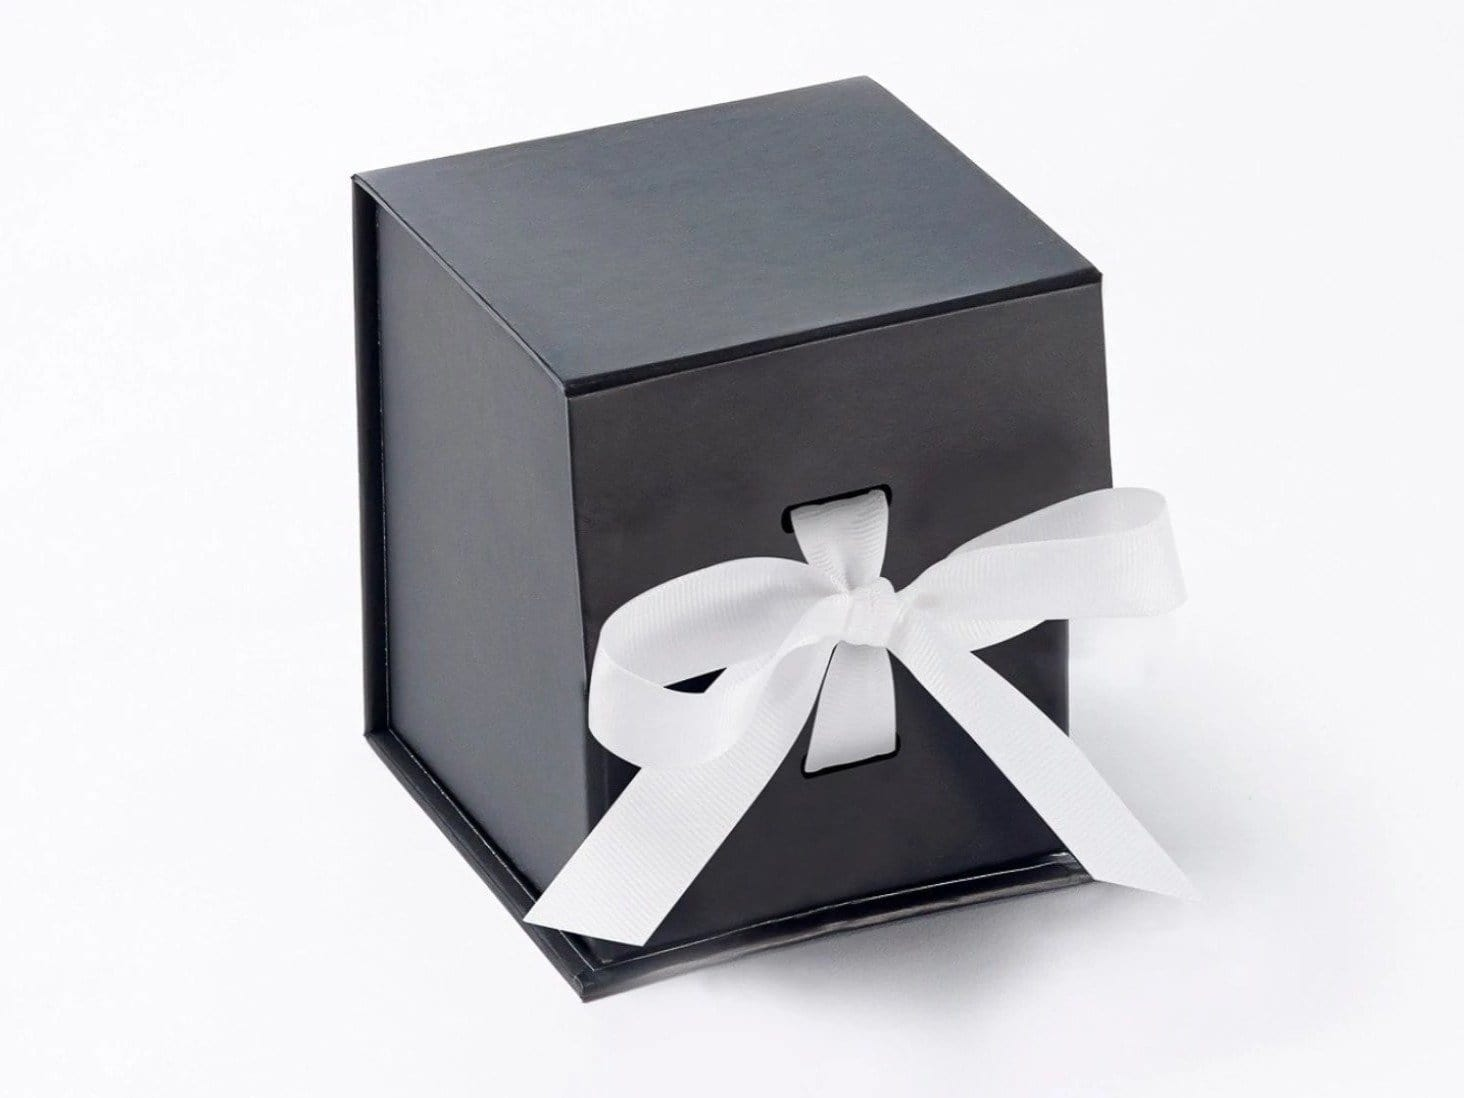 luxury small 4 black cube gift boxes removable and. Black Bedroom Furniture Sets. Home Design Ideas